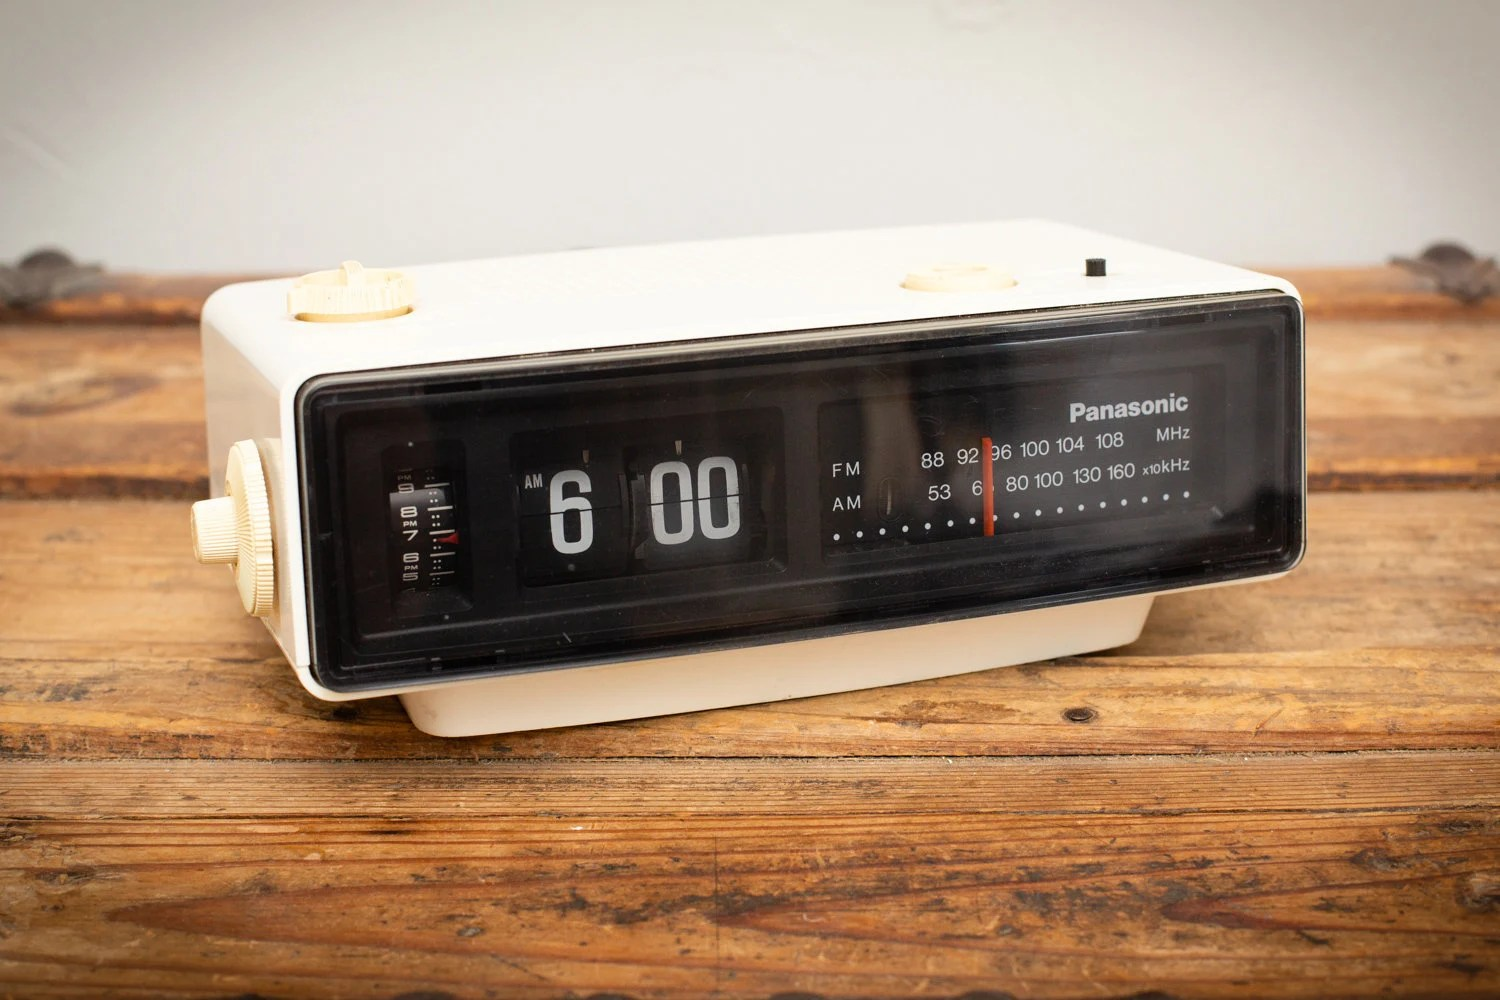 Flip Clock Groundhog Day Flip Clock Panasonic Rc 6025 Vintage 1970s Working Electronic Radio Bill Murray Movie Classic 1990s Film I Got You Babe